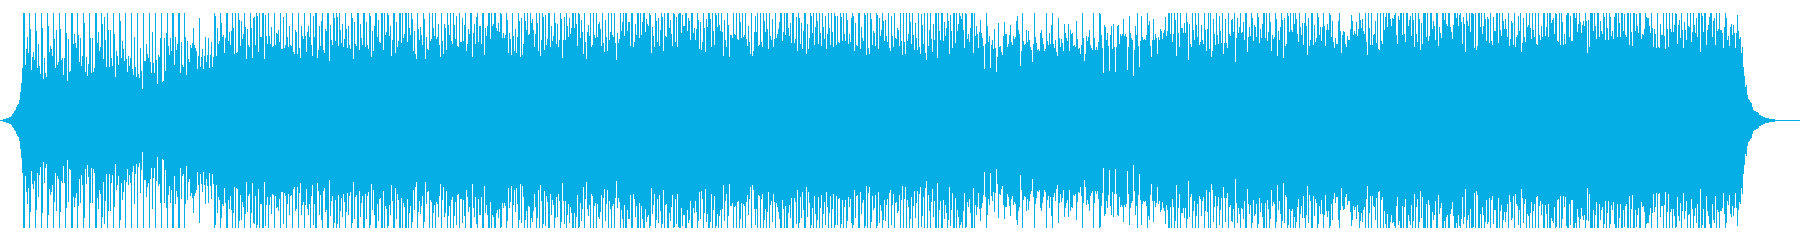 Infographic's reproduced waveform